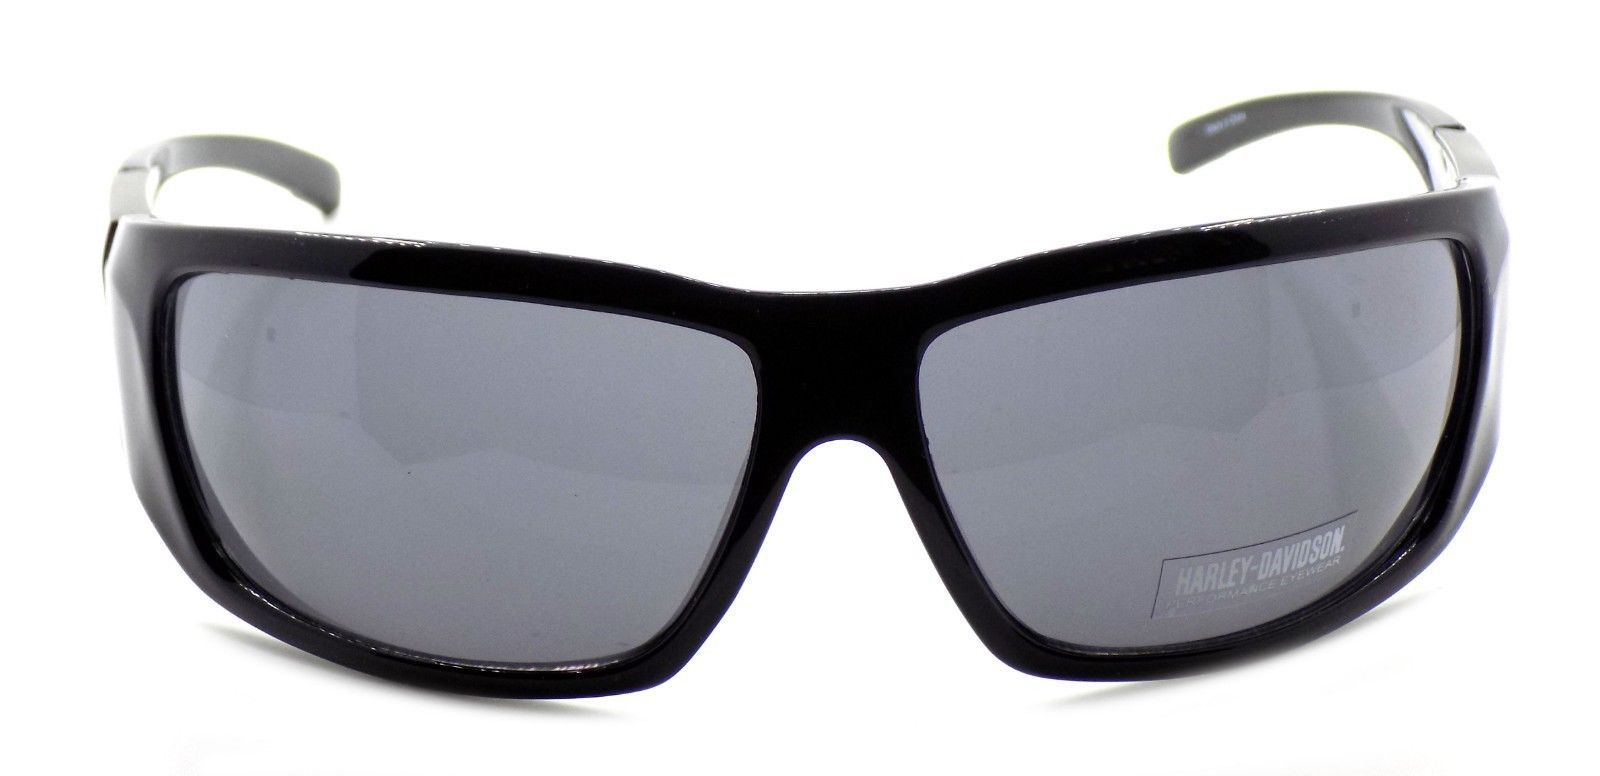 Harley Davidson HDX872 BLK Wraparound Sunglasses Black 67-14-130 Smoke + CASE